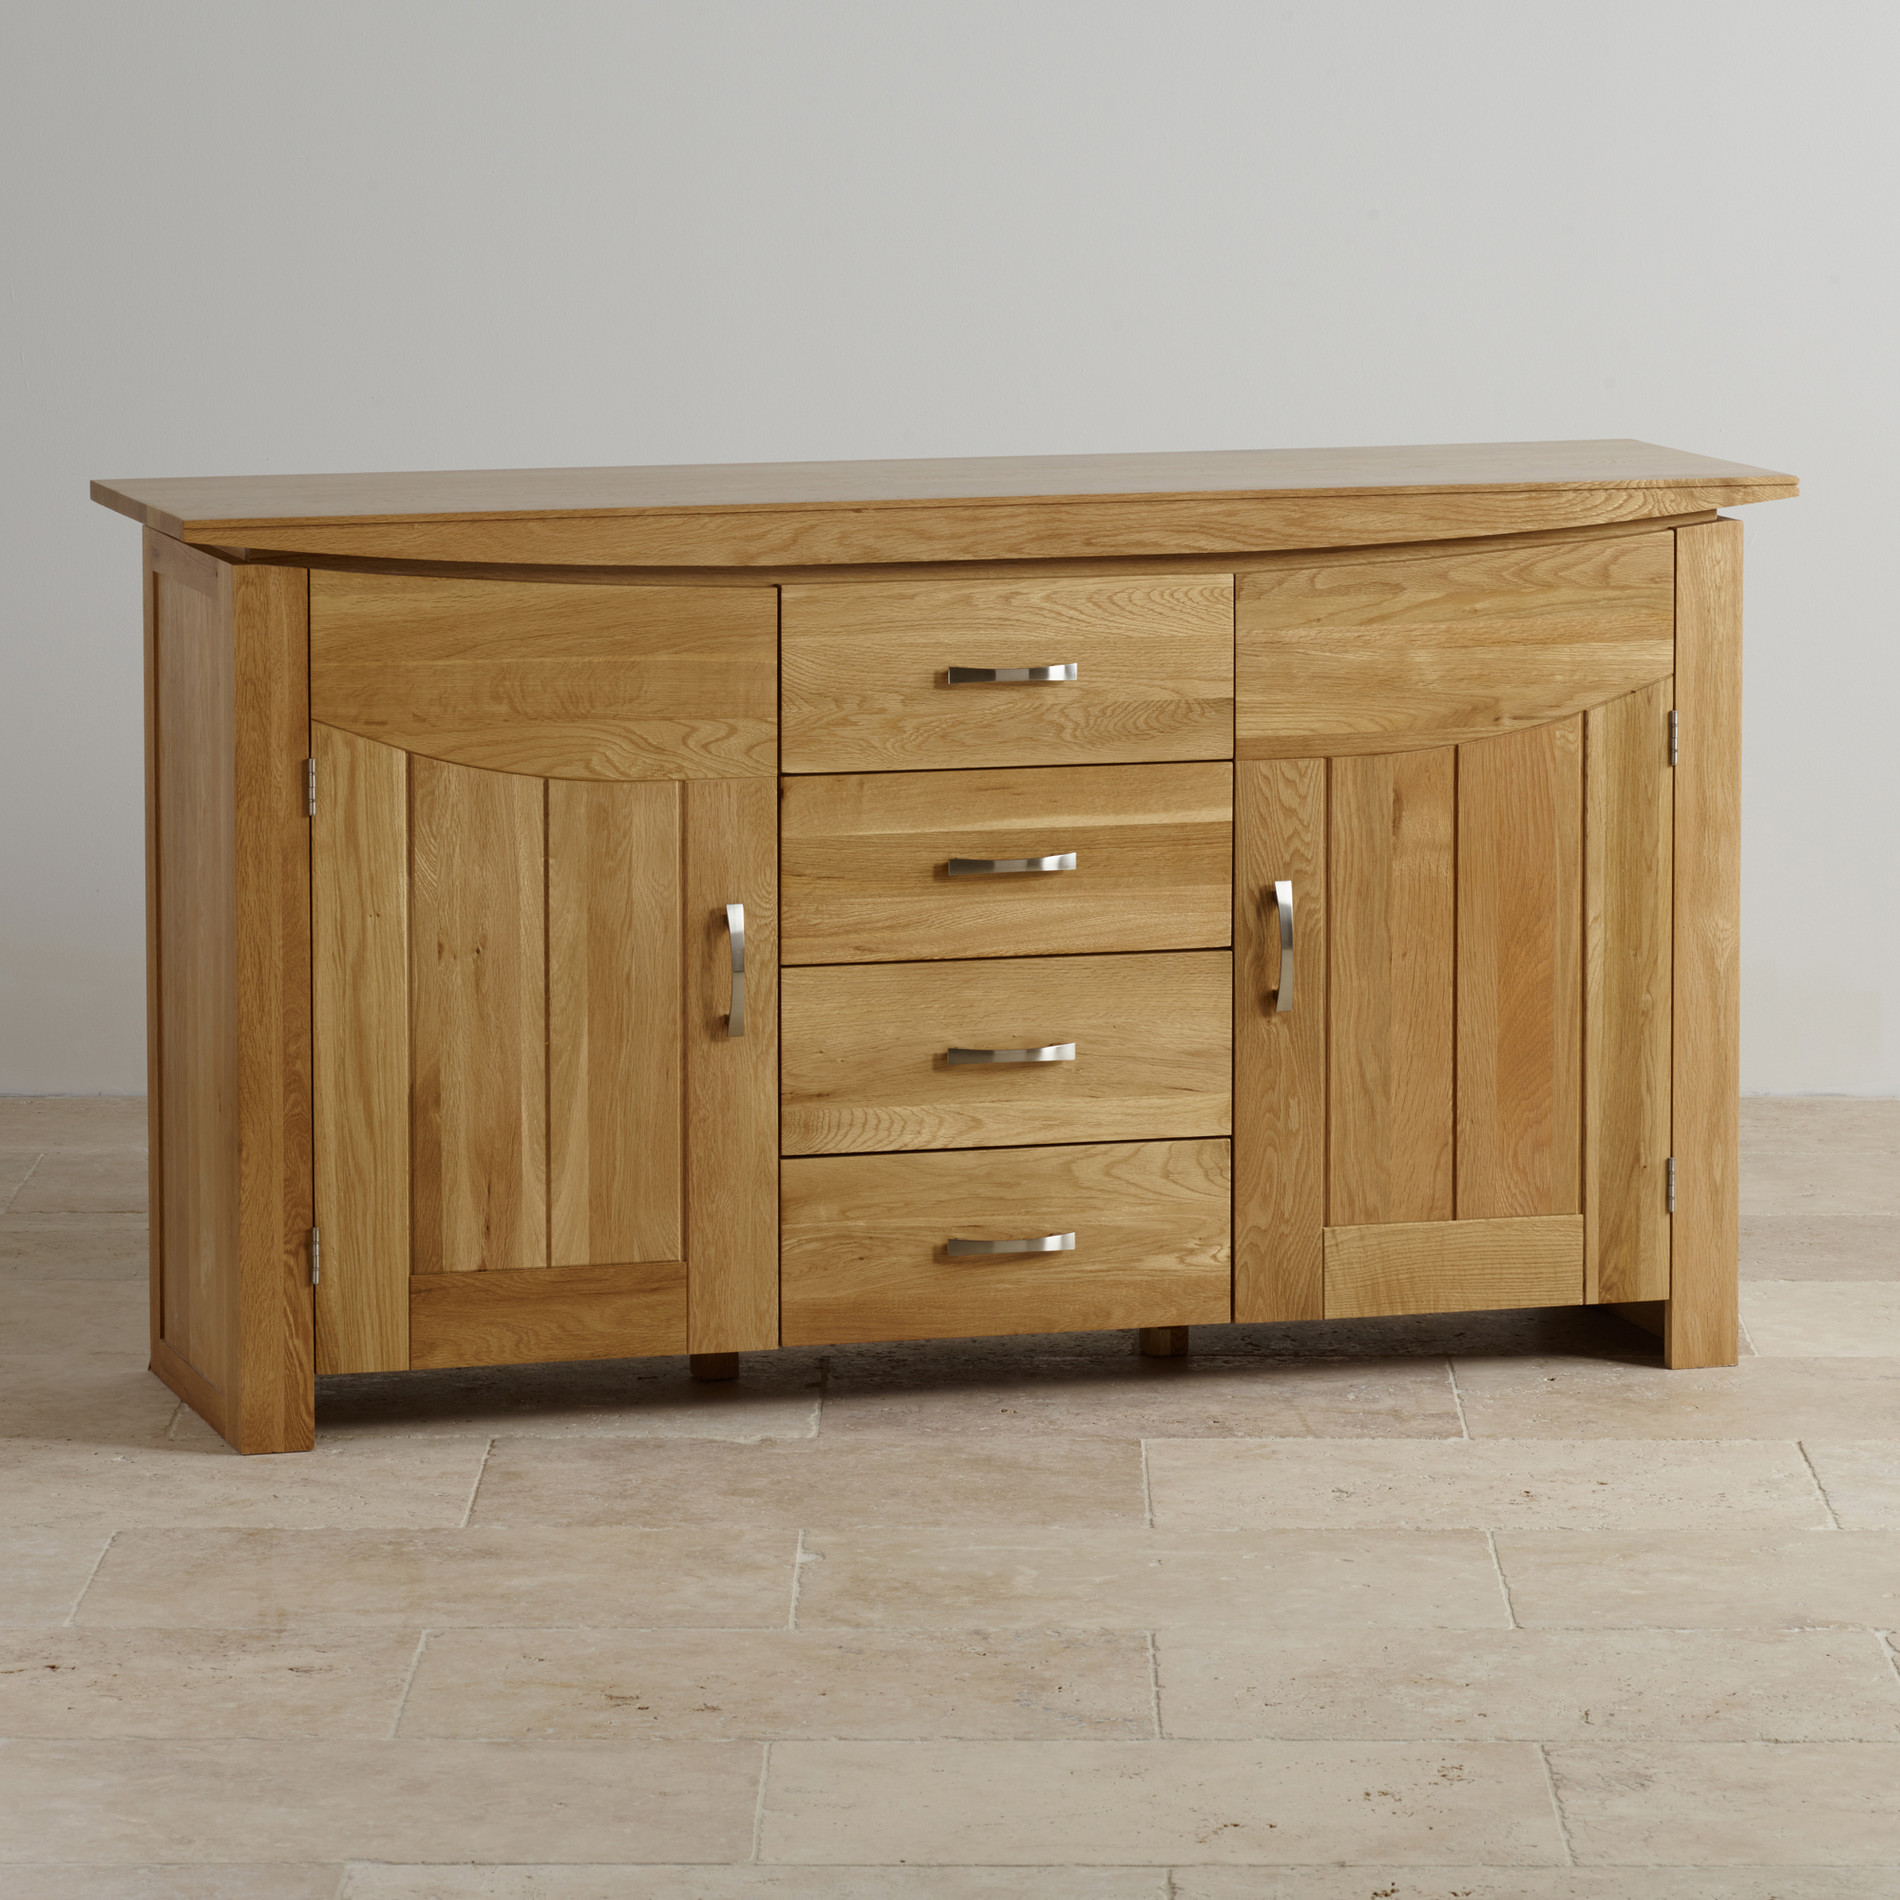 Tokyo large sideboard in natural solid oak oak furniture for Hardwood furniture